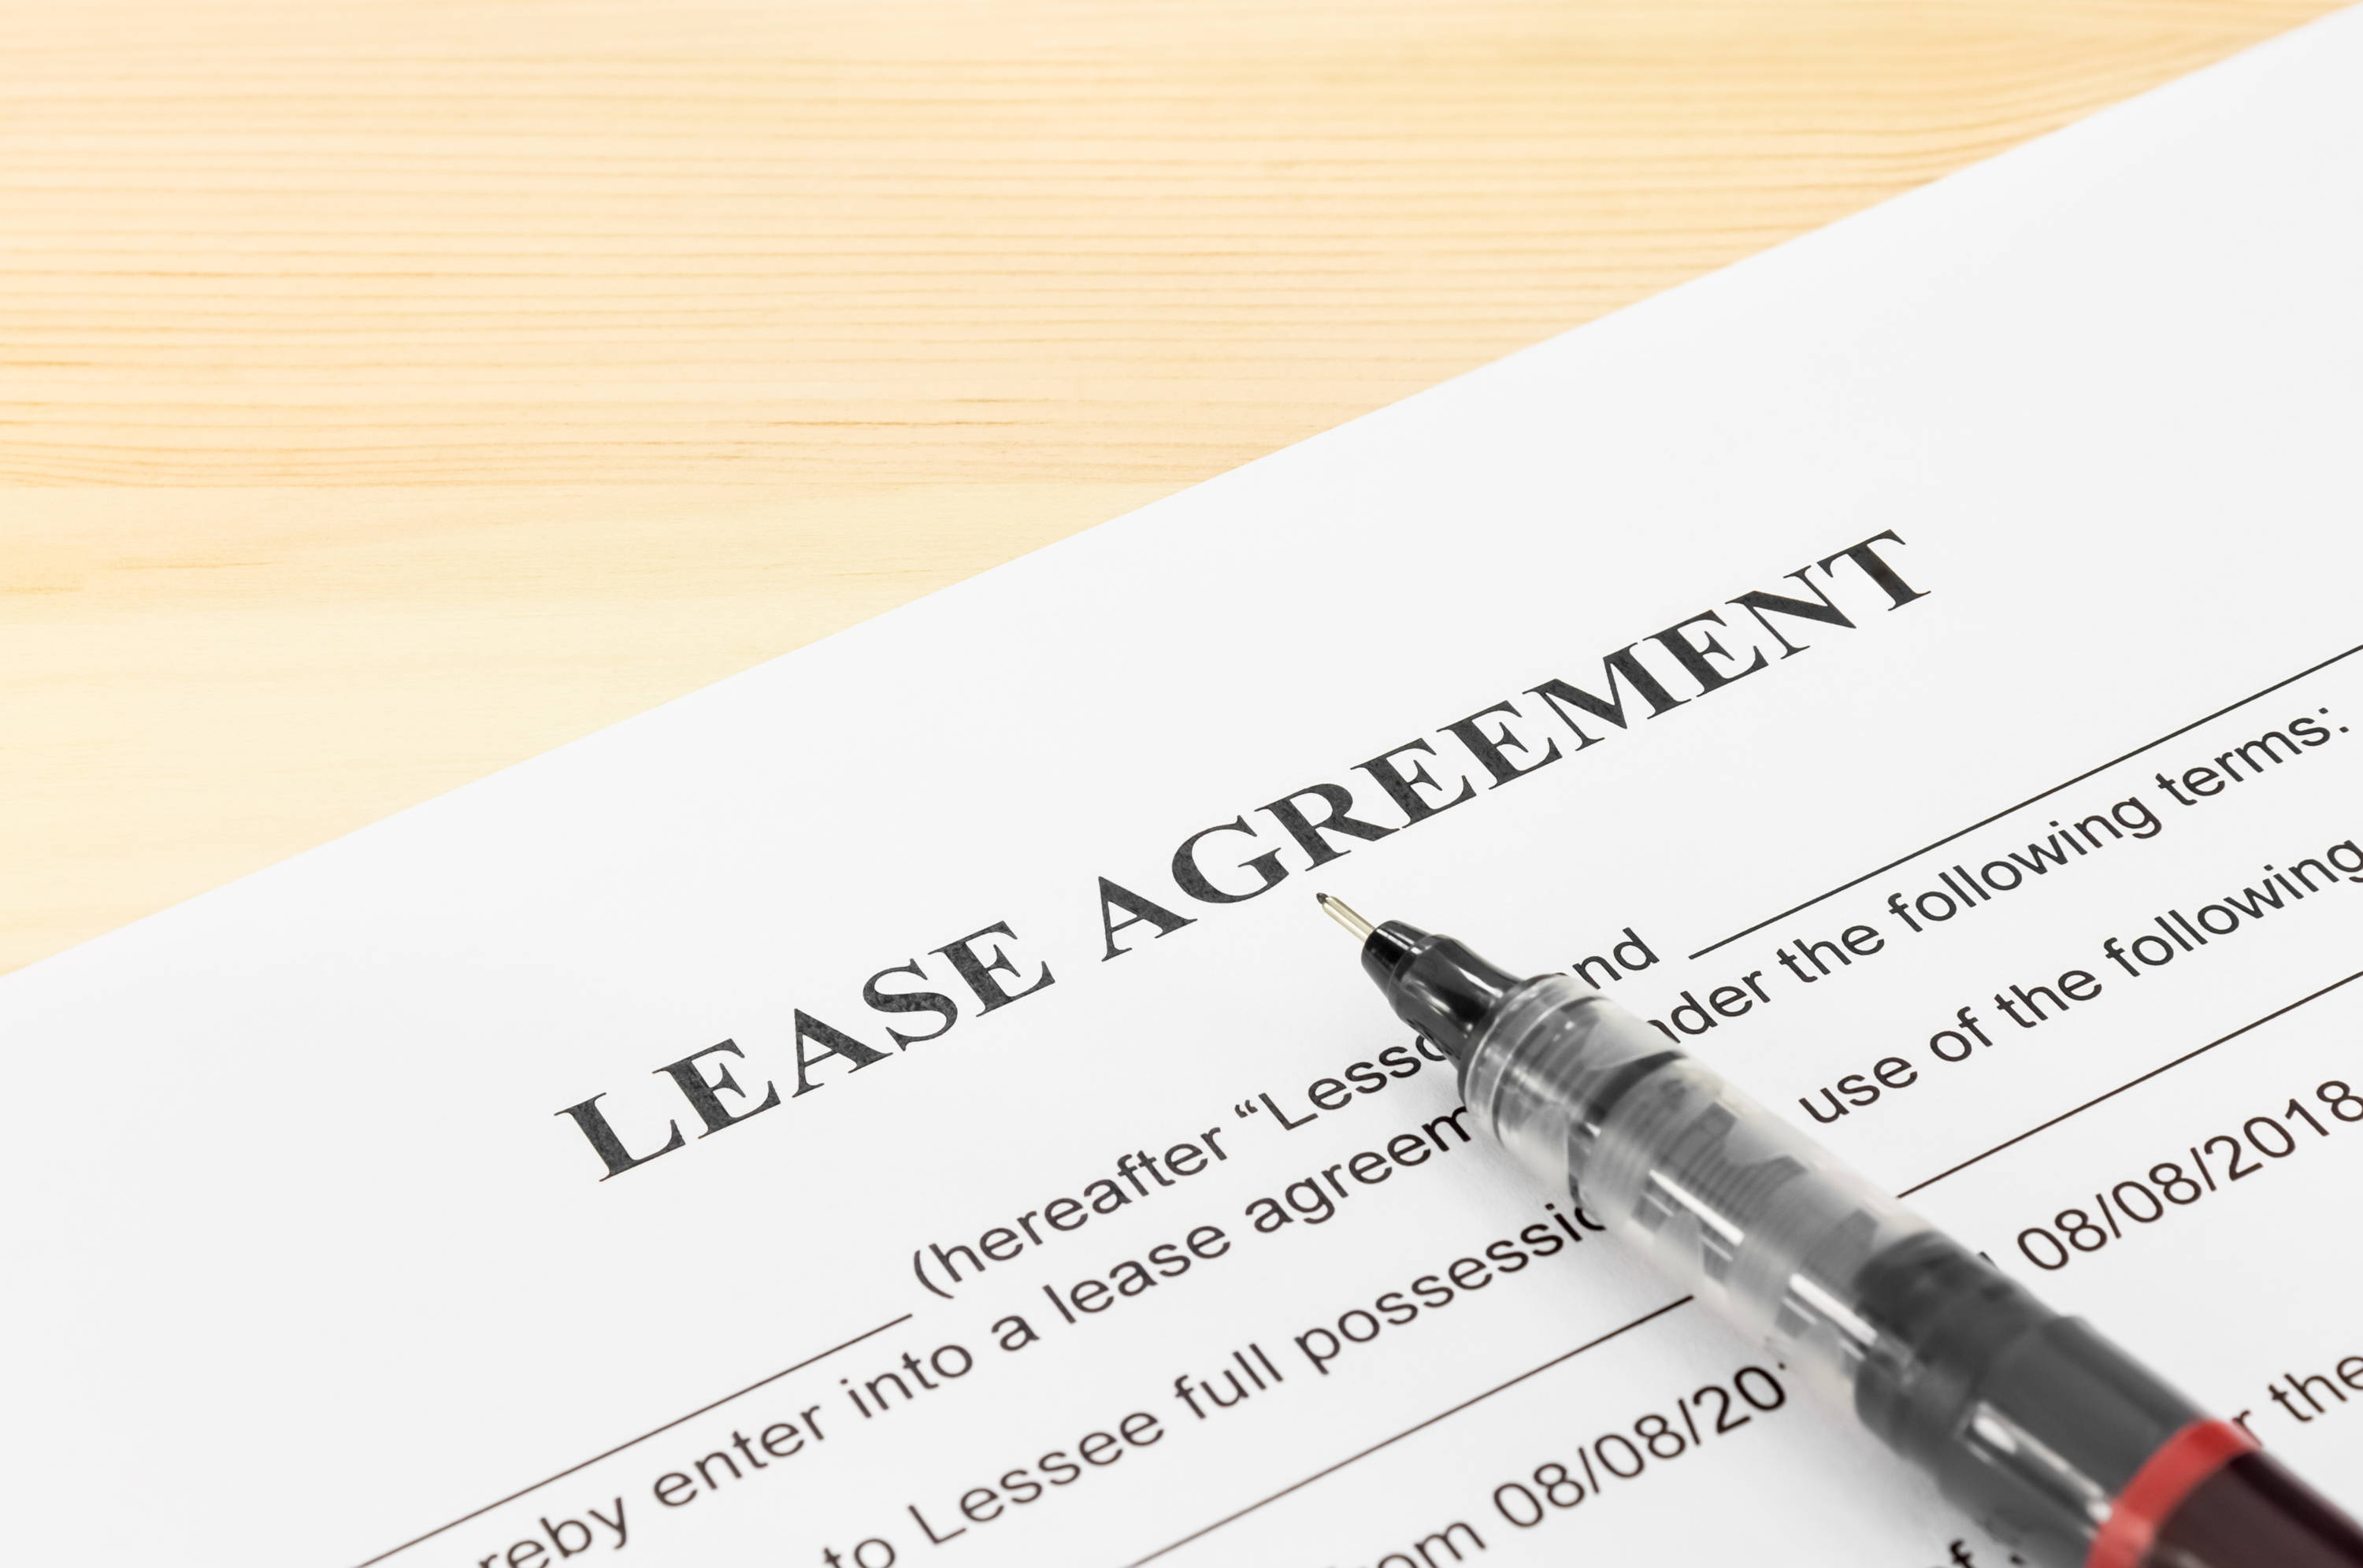 lease agreement | virtual office in delaware with suite number and lease